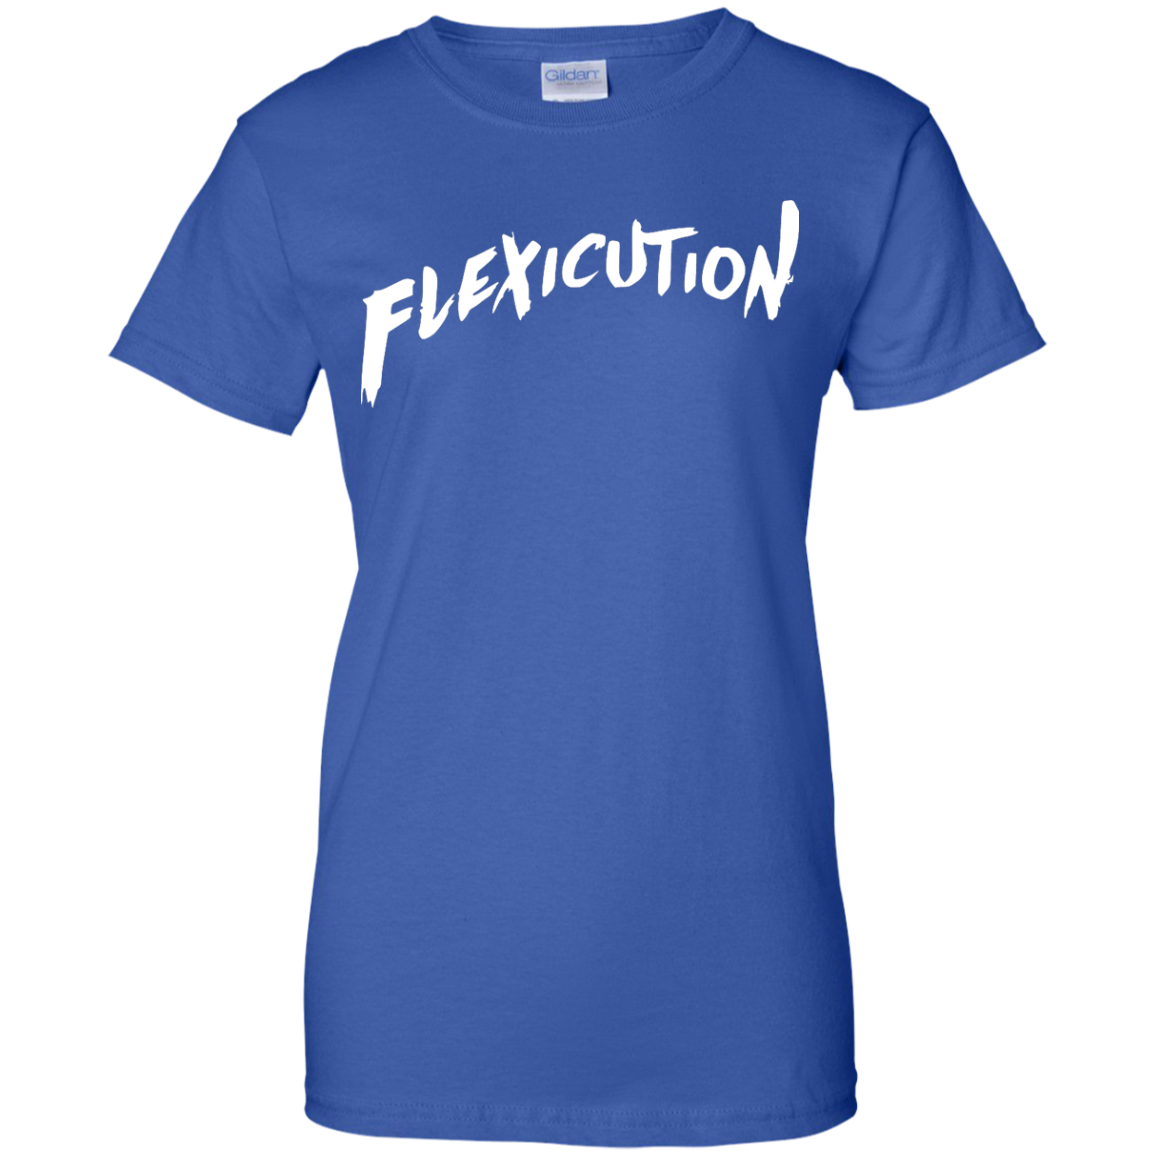 image 539px Flexicution Logic T Shirt, Hoodies, Tank Top